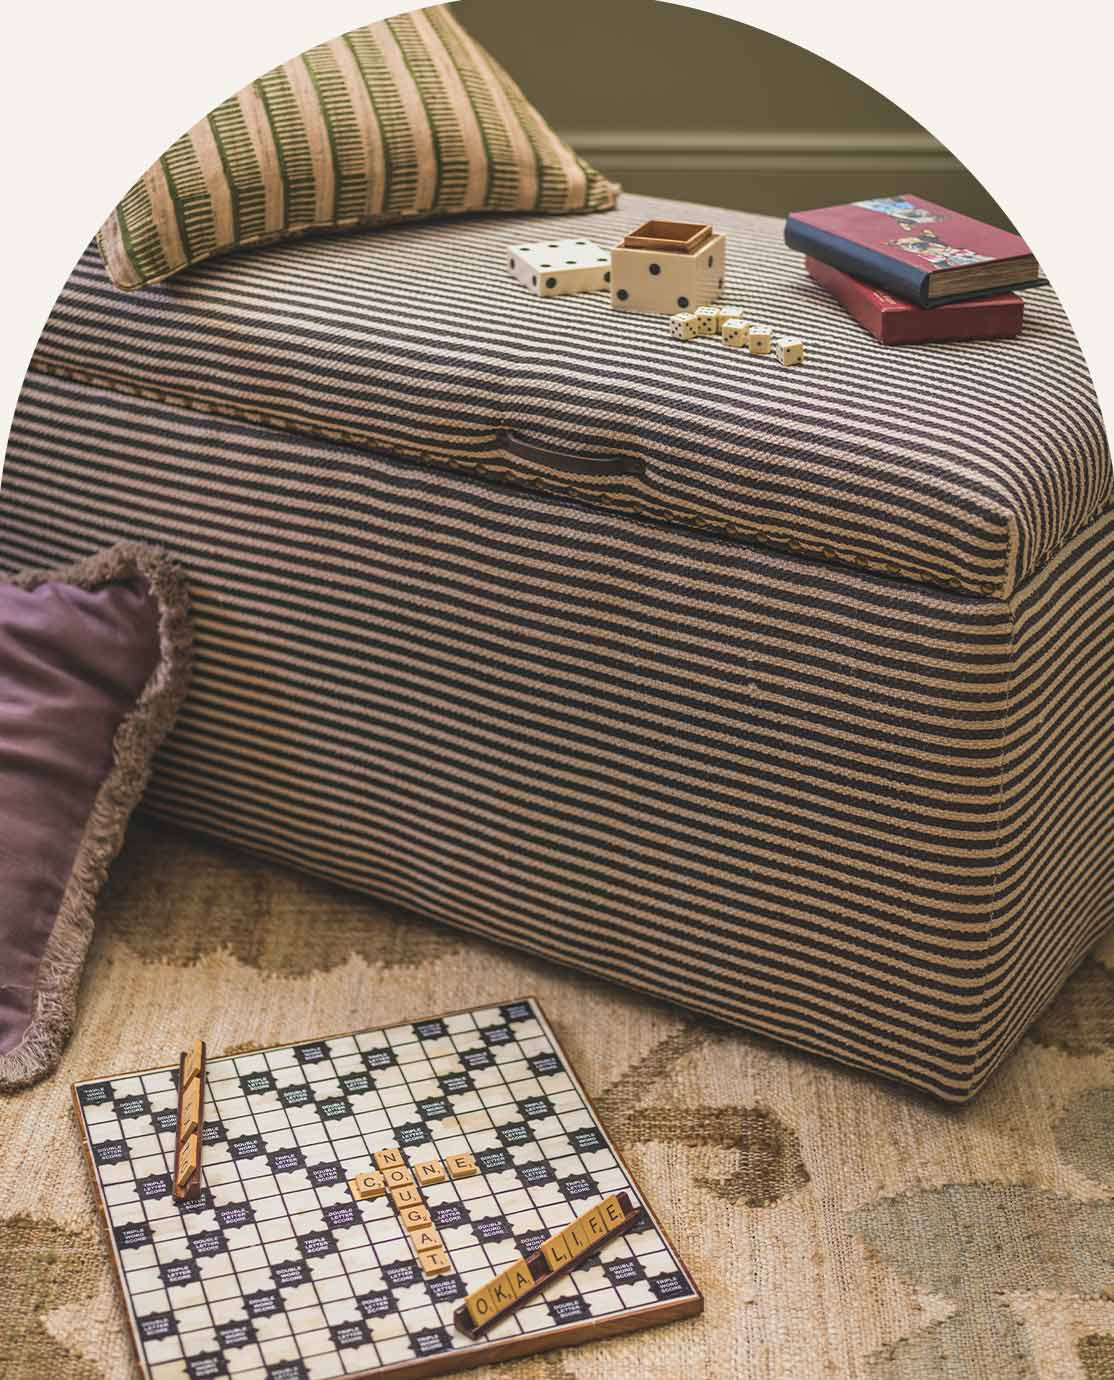 Striped ottoman, board games and cushions